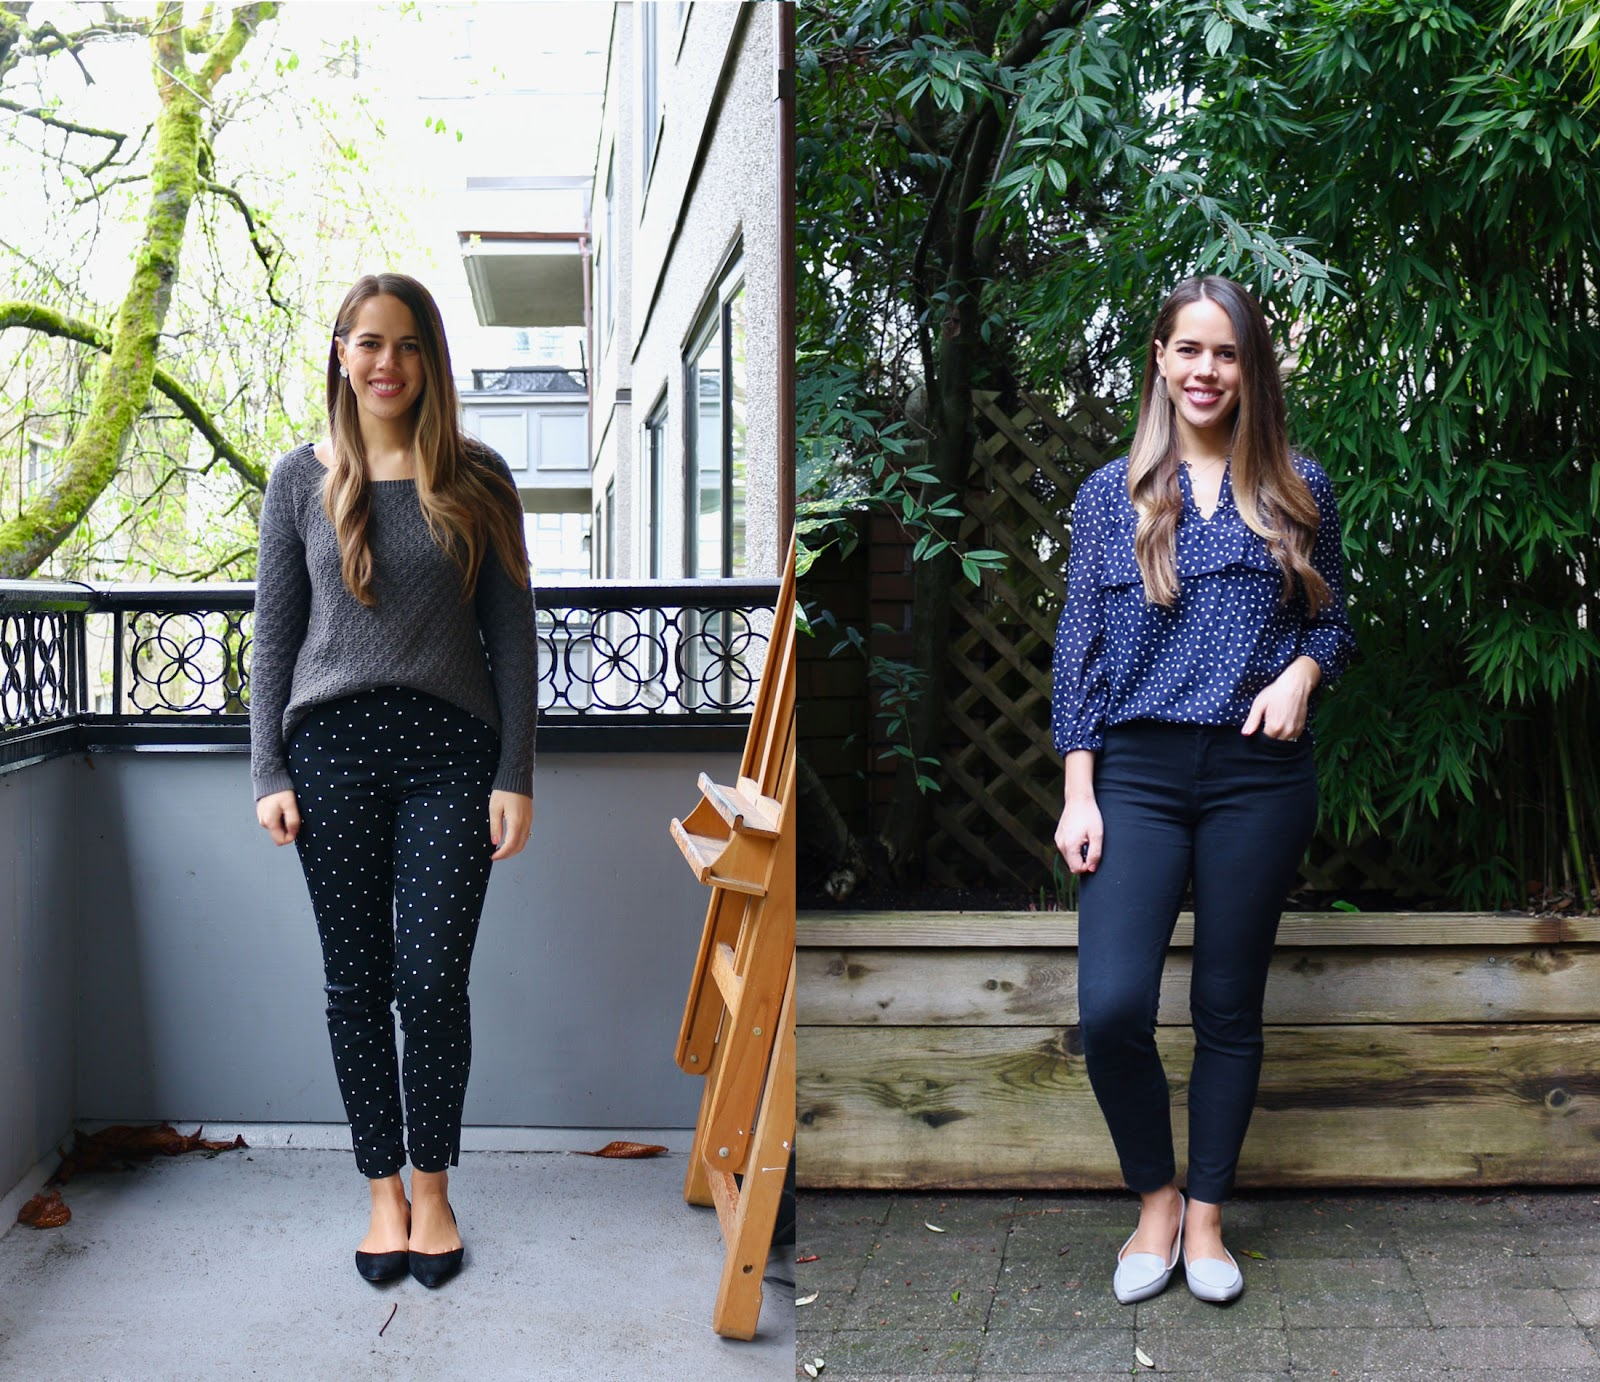 Jules in Flats - April Outfits (Business Casual Workwear on a Budget)